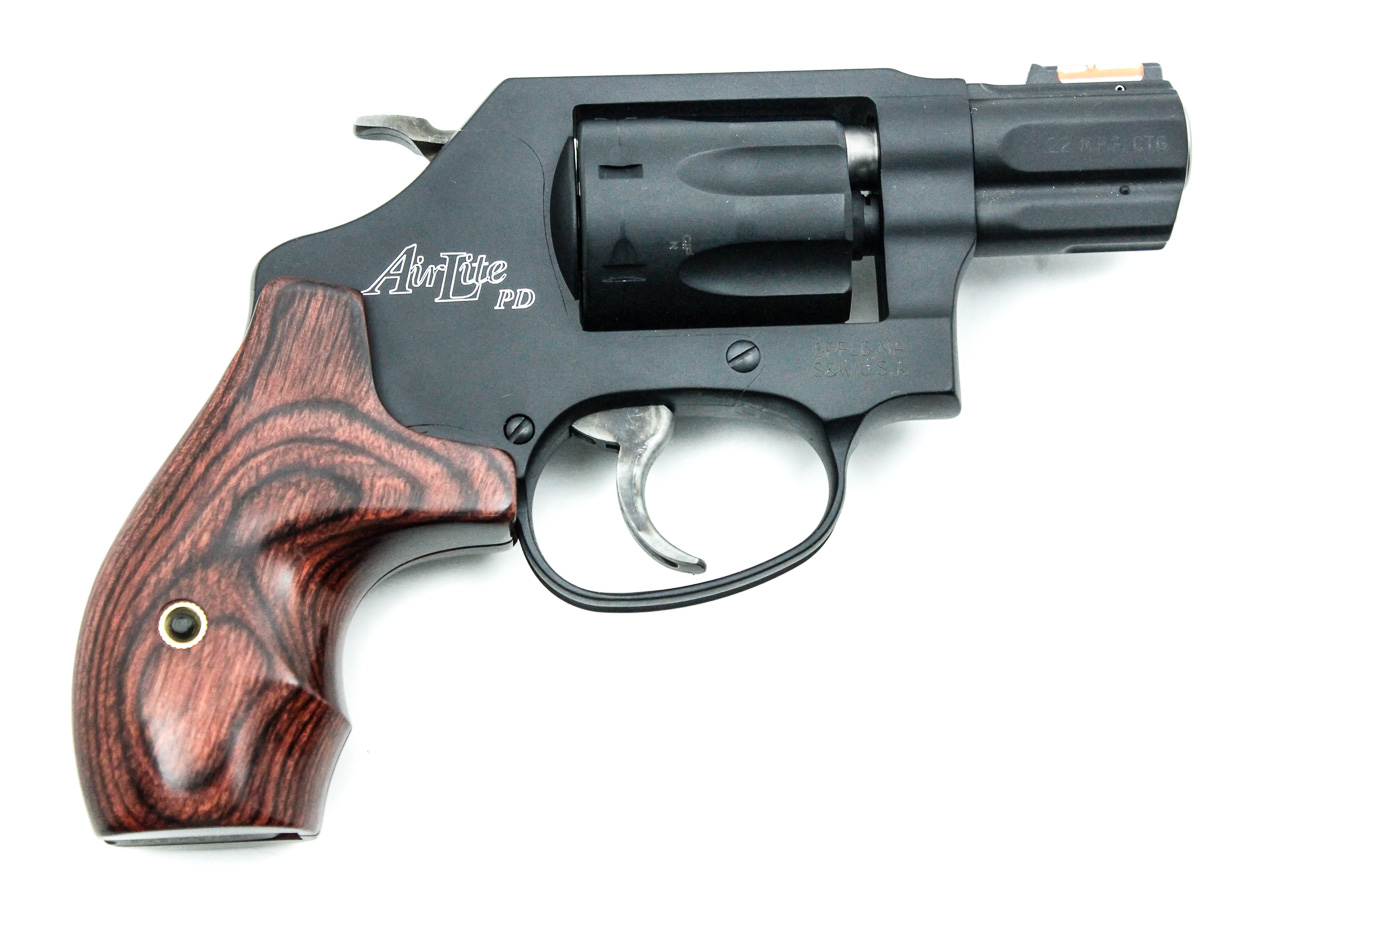 Smith & Wesson 351 PD, .22 Magnum - Image 2